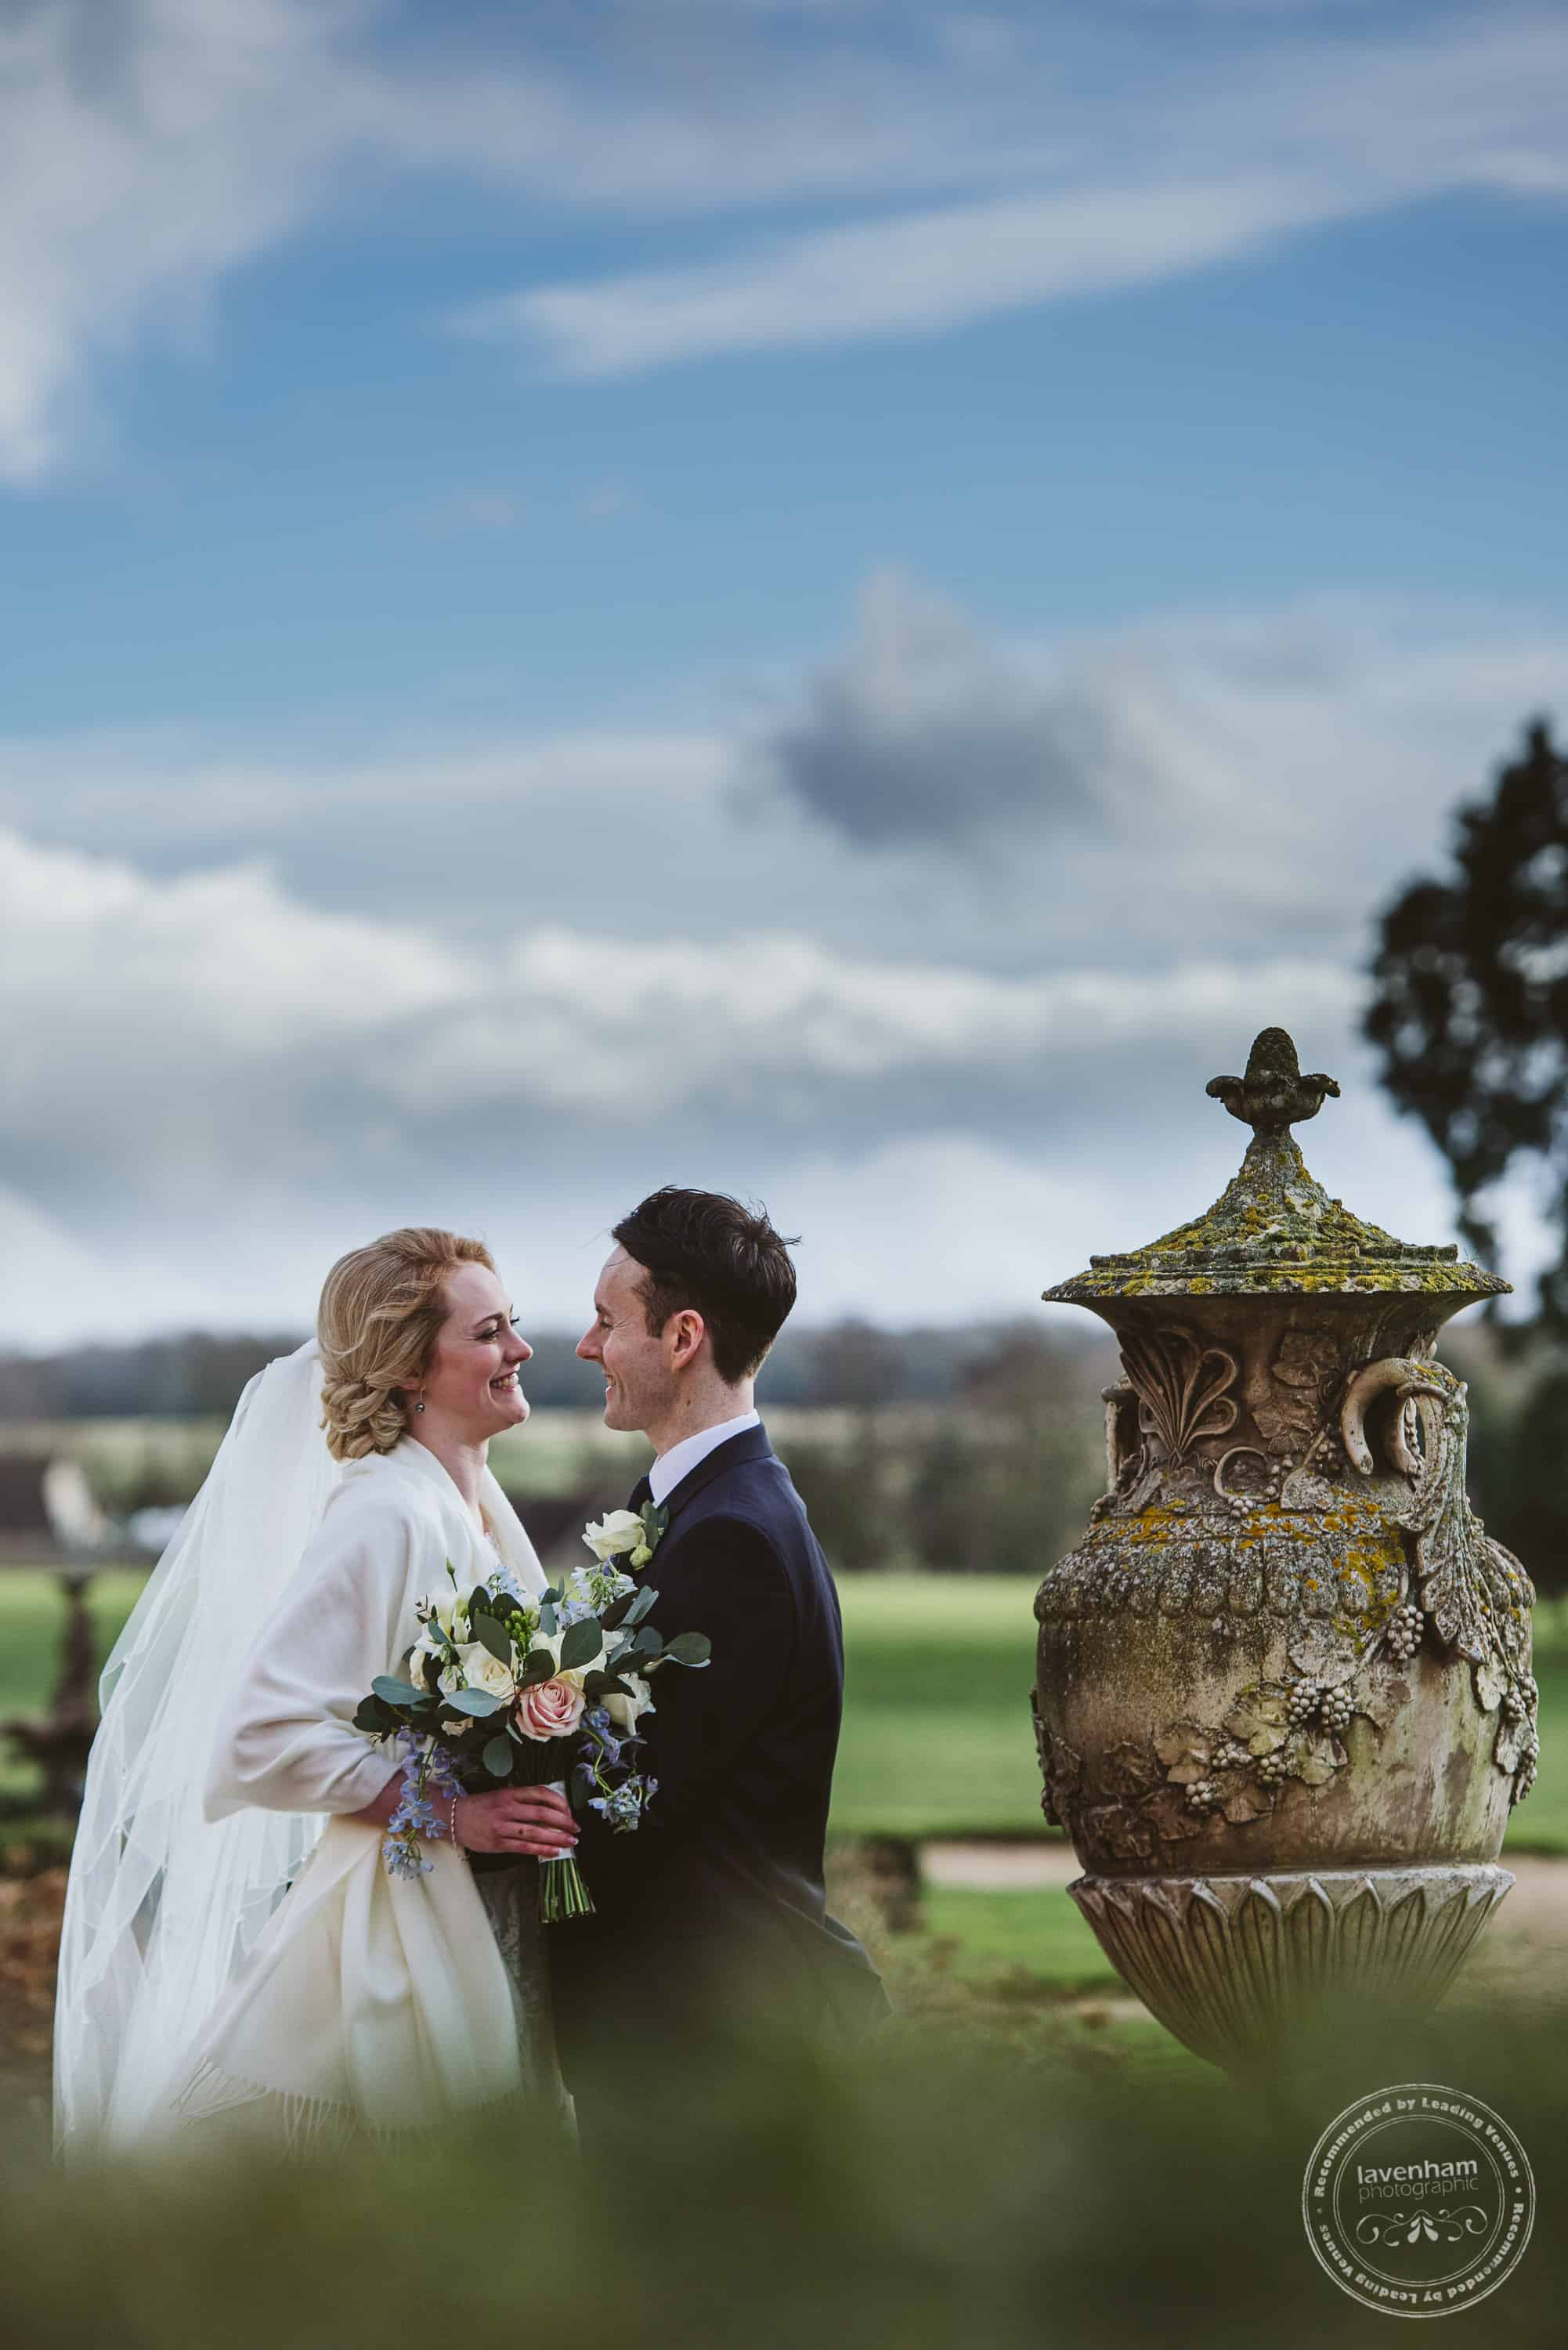 Wedding photography by the stone urn at Gosfield. Adding soft, out-of-focus edges to photos can create a nice look!